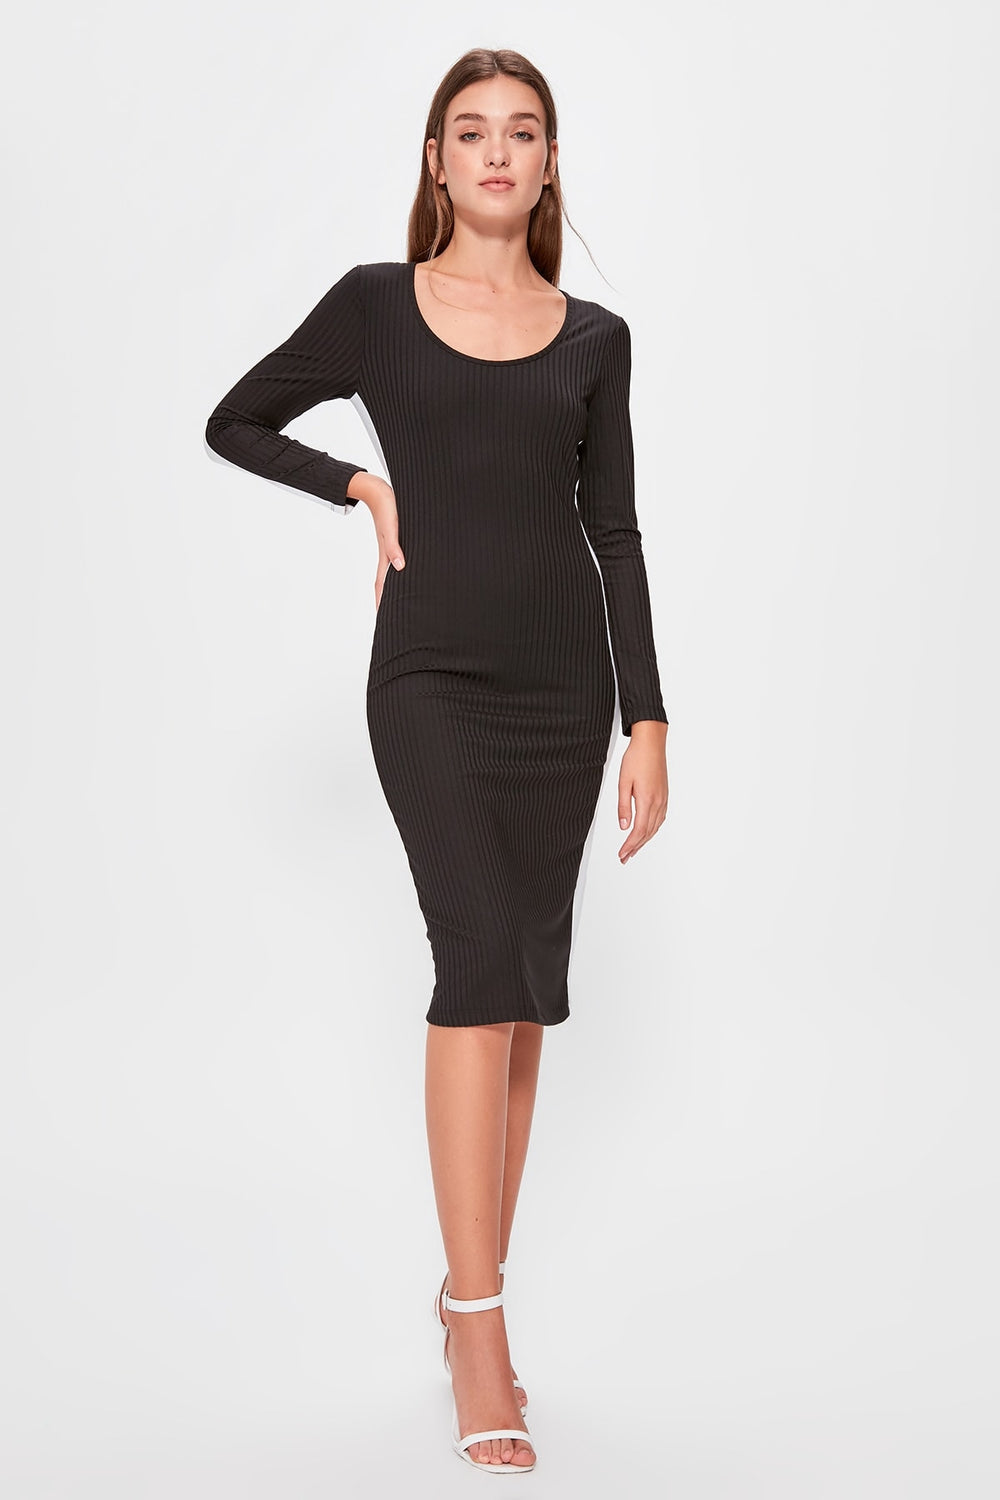 Miss Zut Miss Zut Black Sides Knitted Ribbon Dress Miss Zut &CO